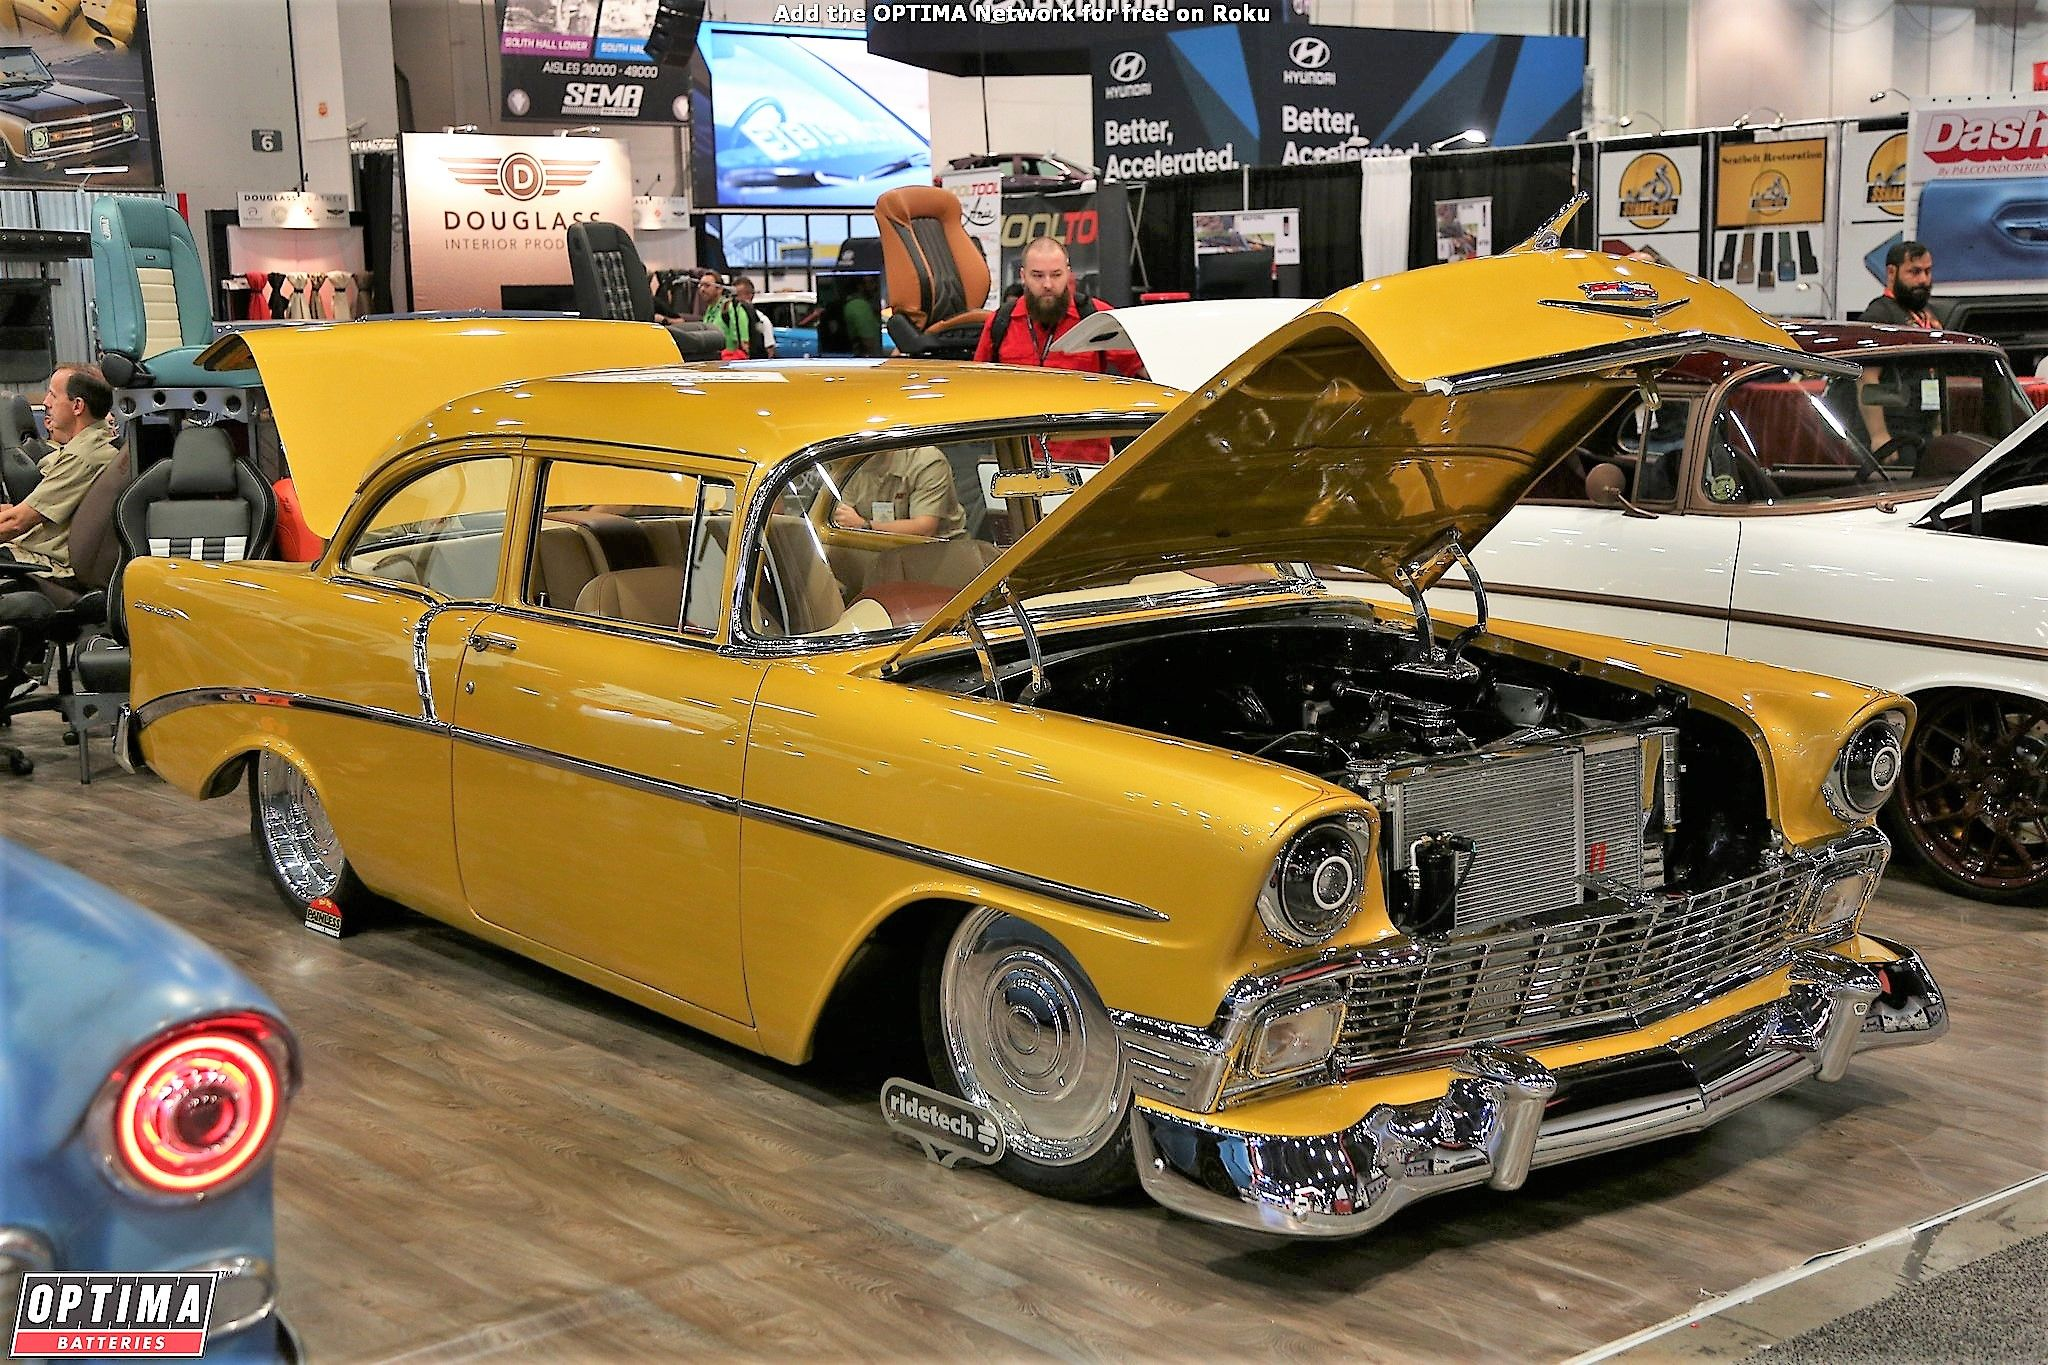 1955 Chevrolet Bel Air On Display At The 2017 Sema Show In Las